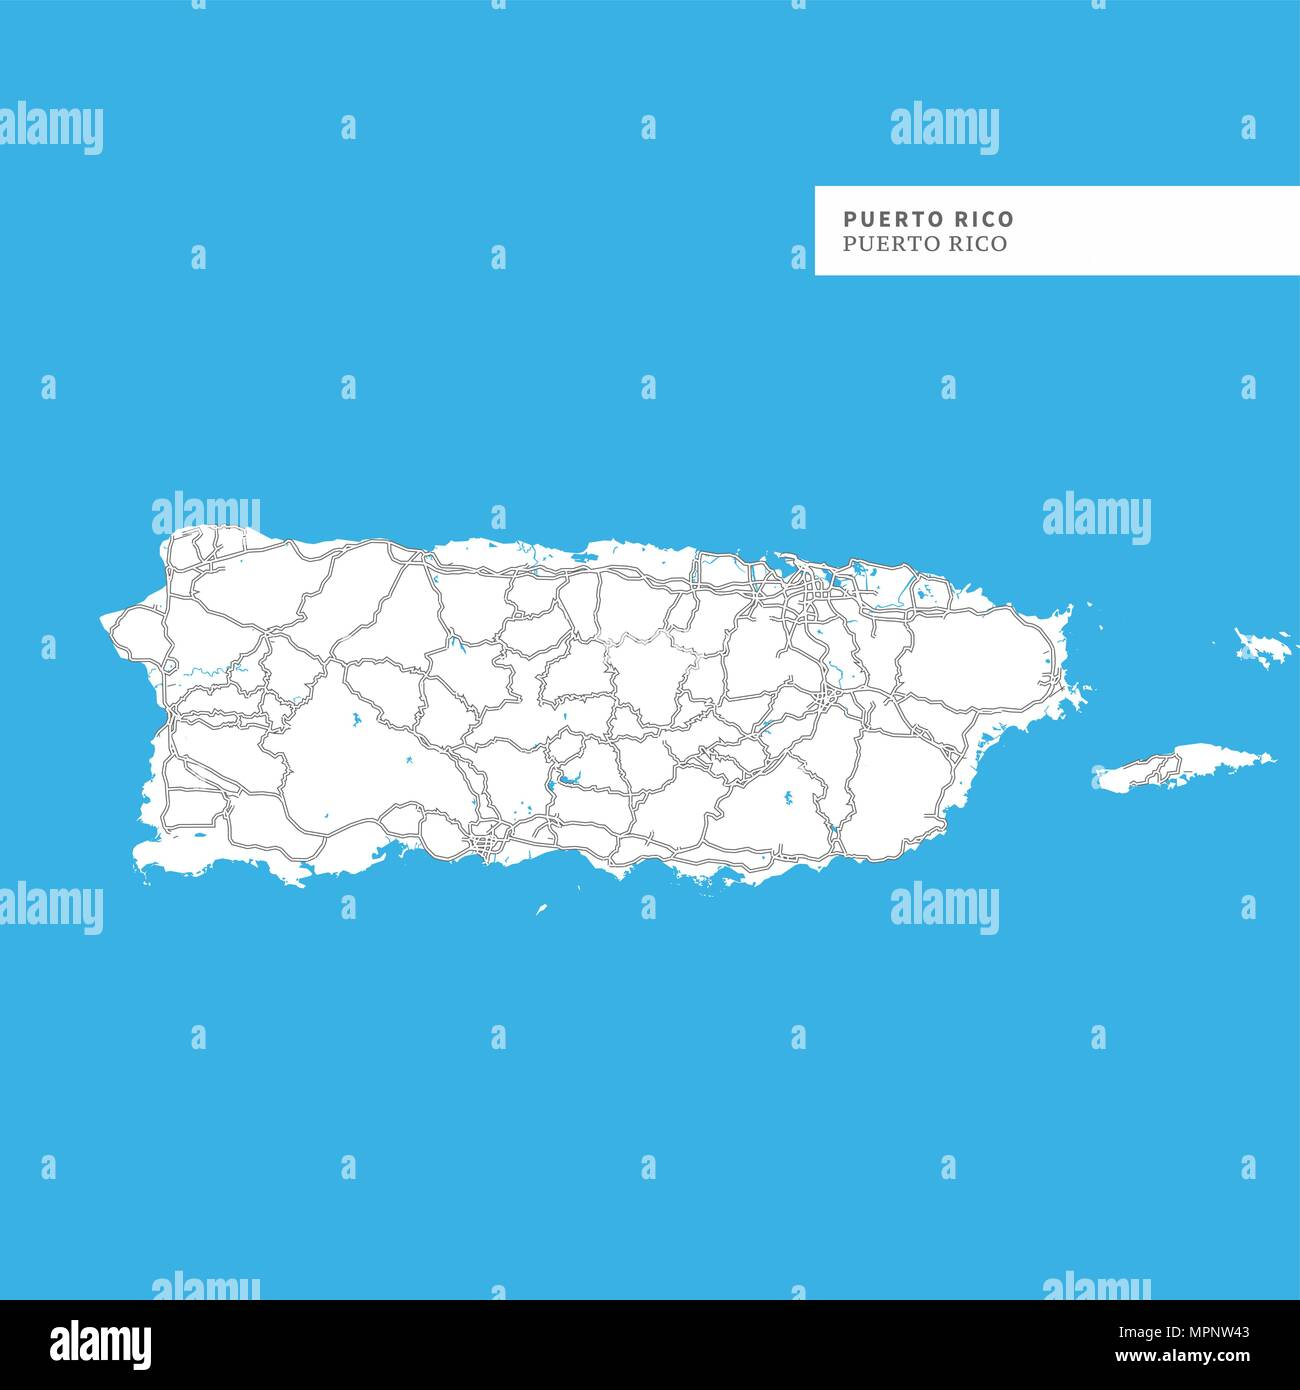 Map Of Puerto Rico Island Puerto Rico Contains Geography